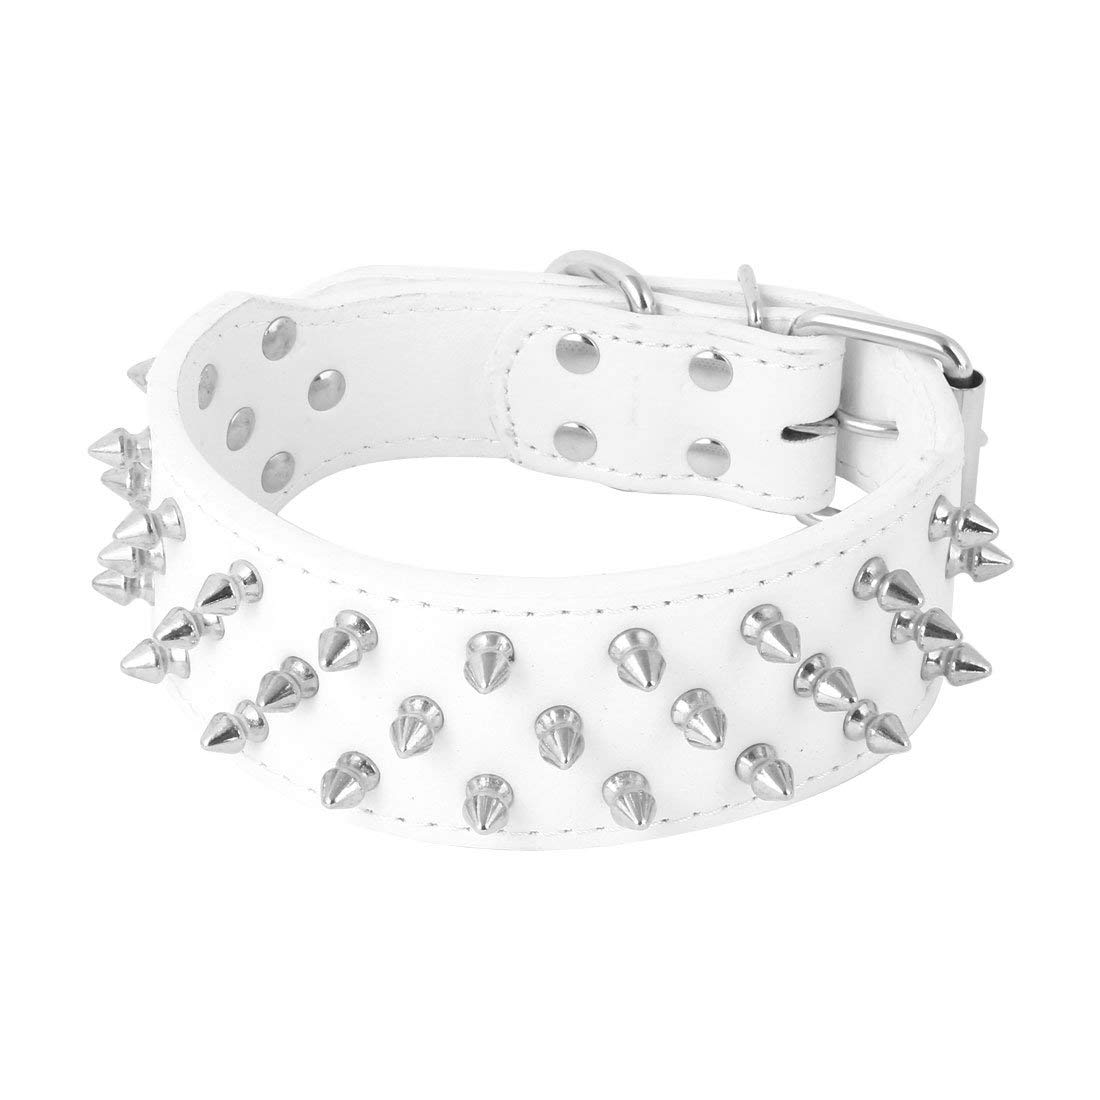 Faux Leather Walking Trainning Spiked Rivets Studded Metal Buckle Pet Dog Collar Neck Ornament